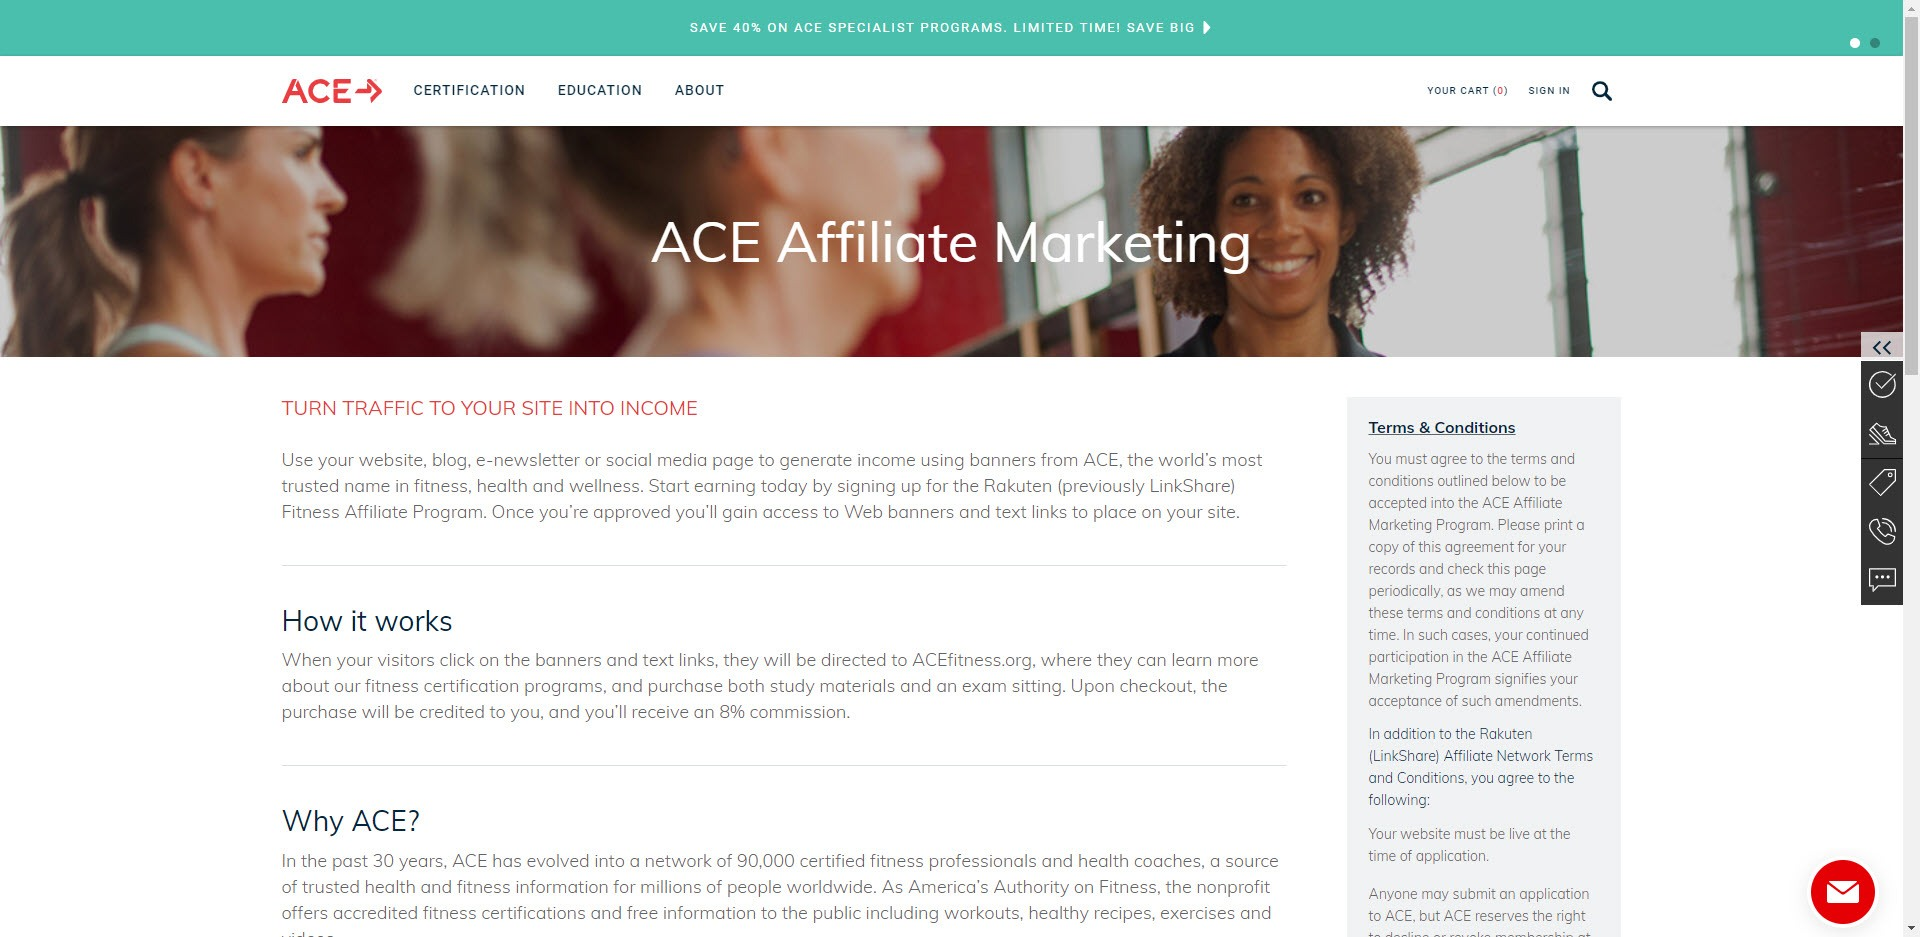 Best Fitness Affiliate Programs 2019 - ace affiliate